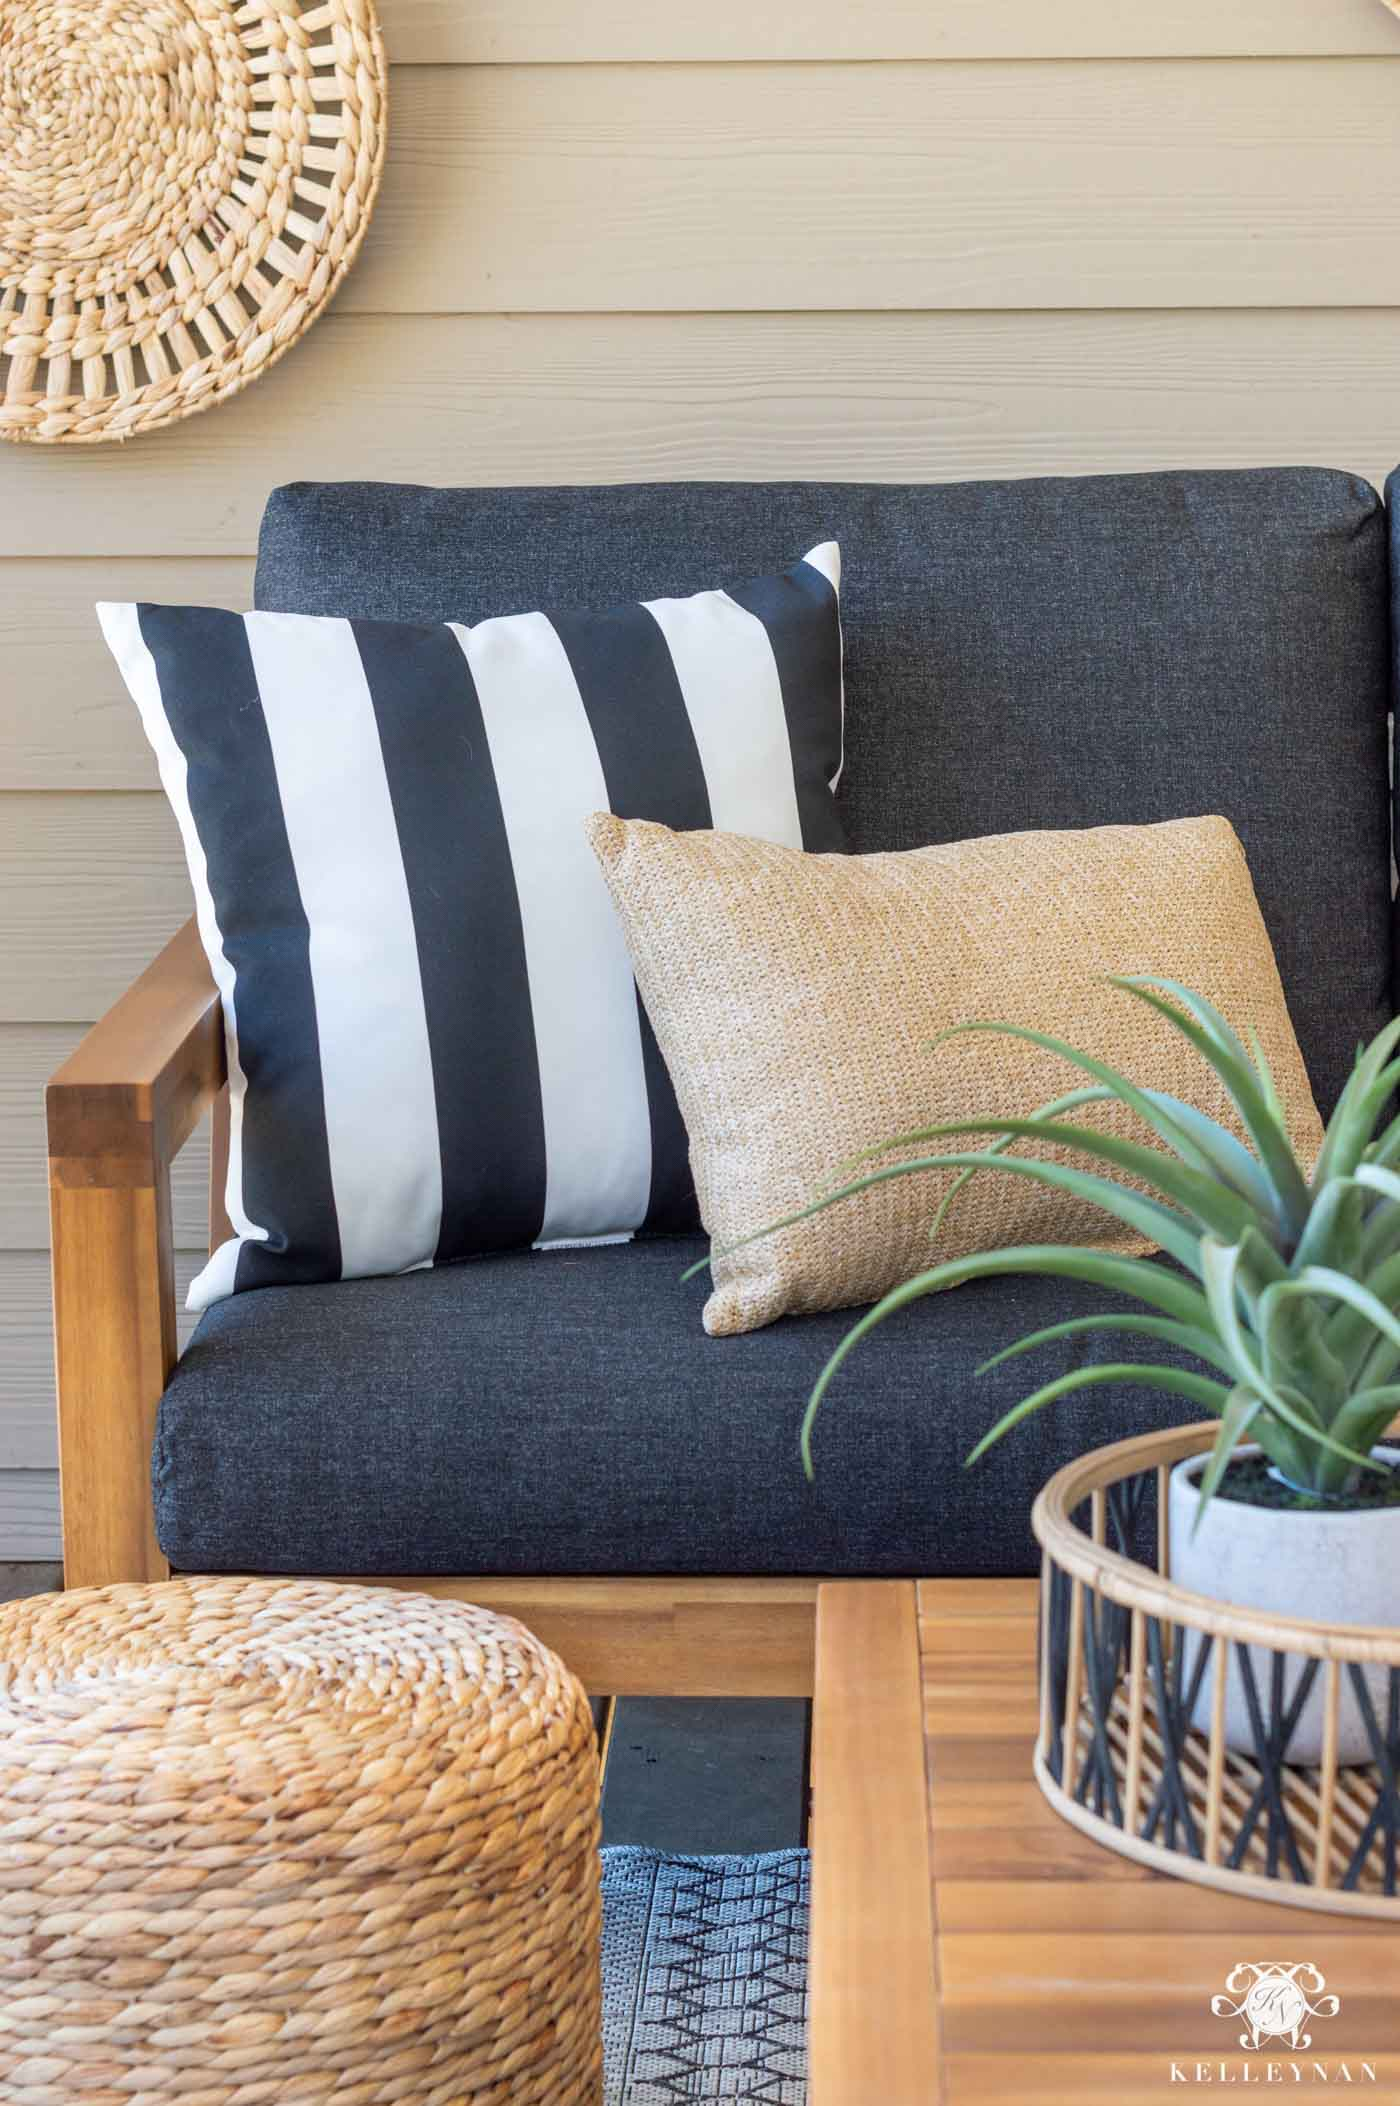 How to Make Your Outdoor Living Space Cozy on a Budget